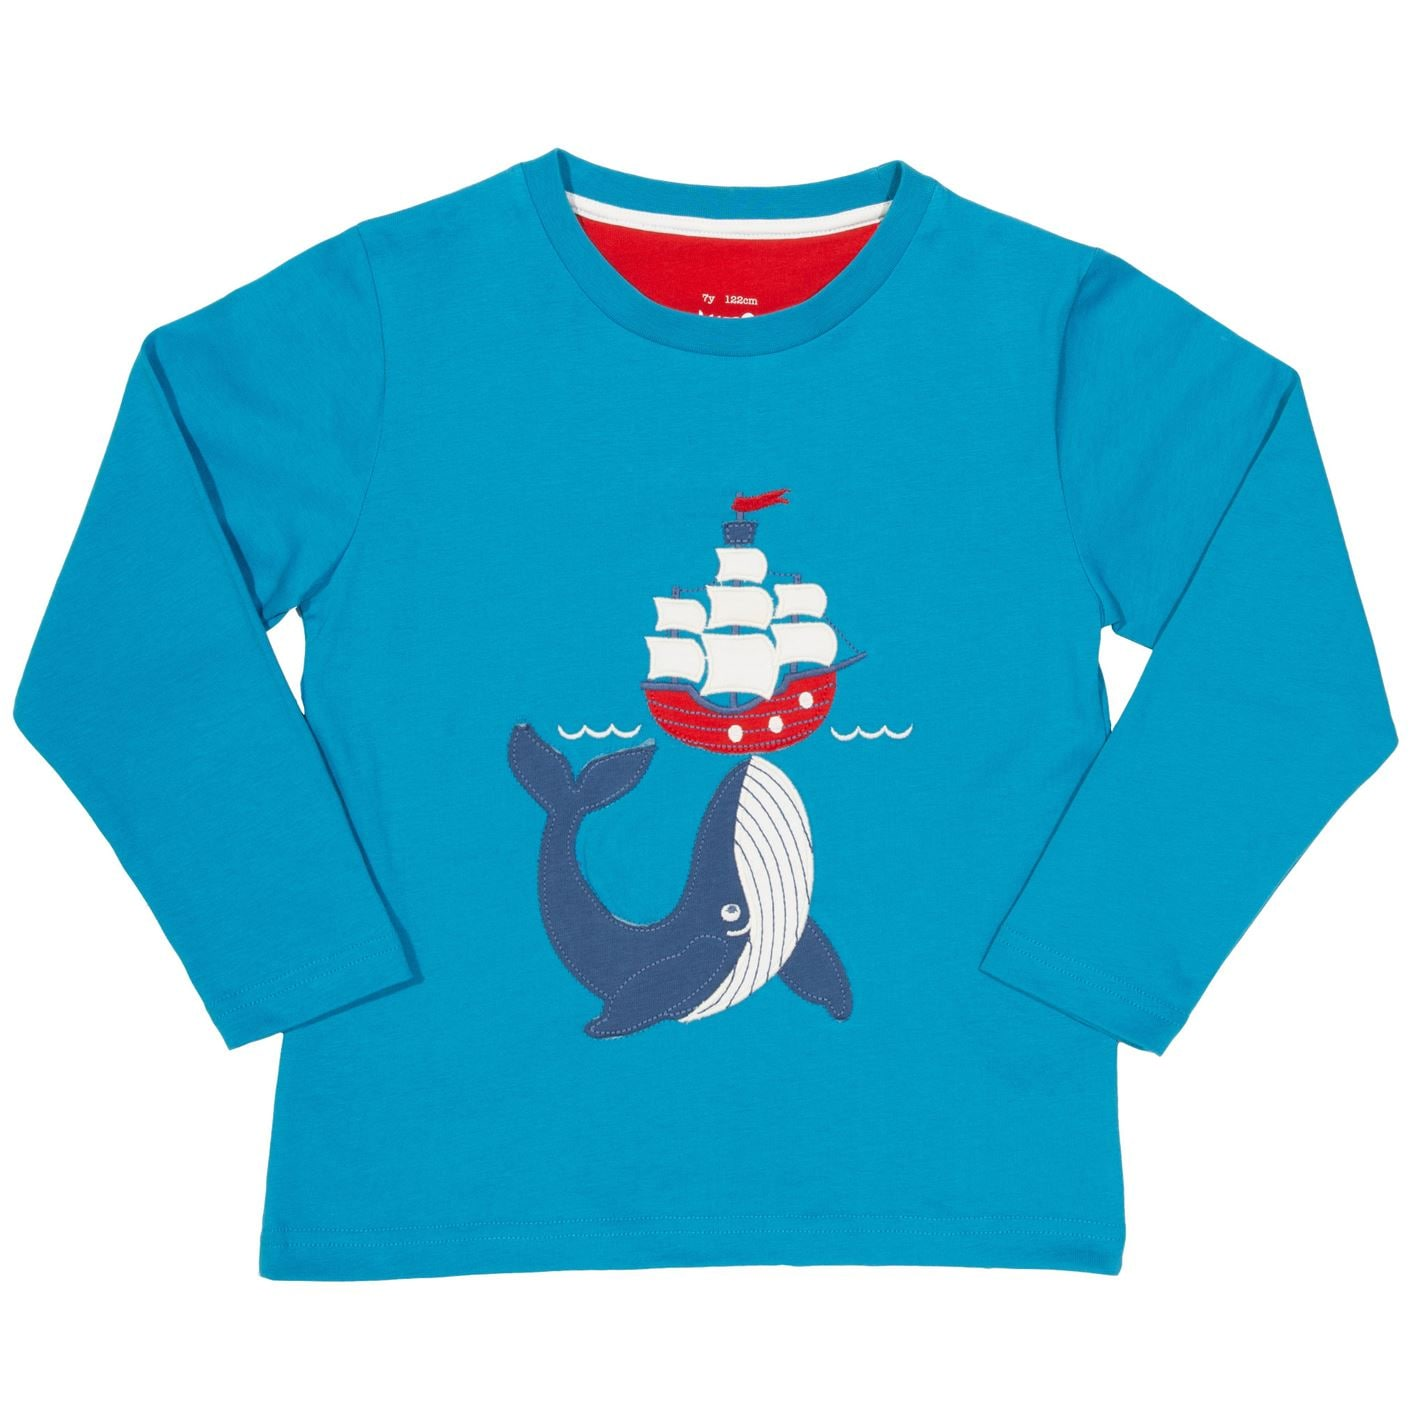 NOW £11 Kite Pirate Whale T-Shirt (Was £22)